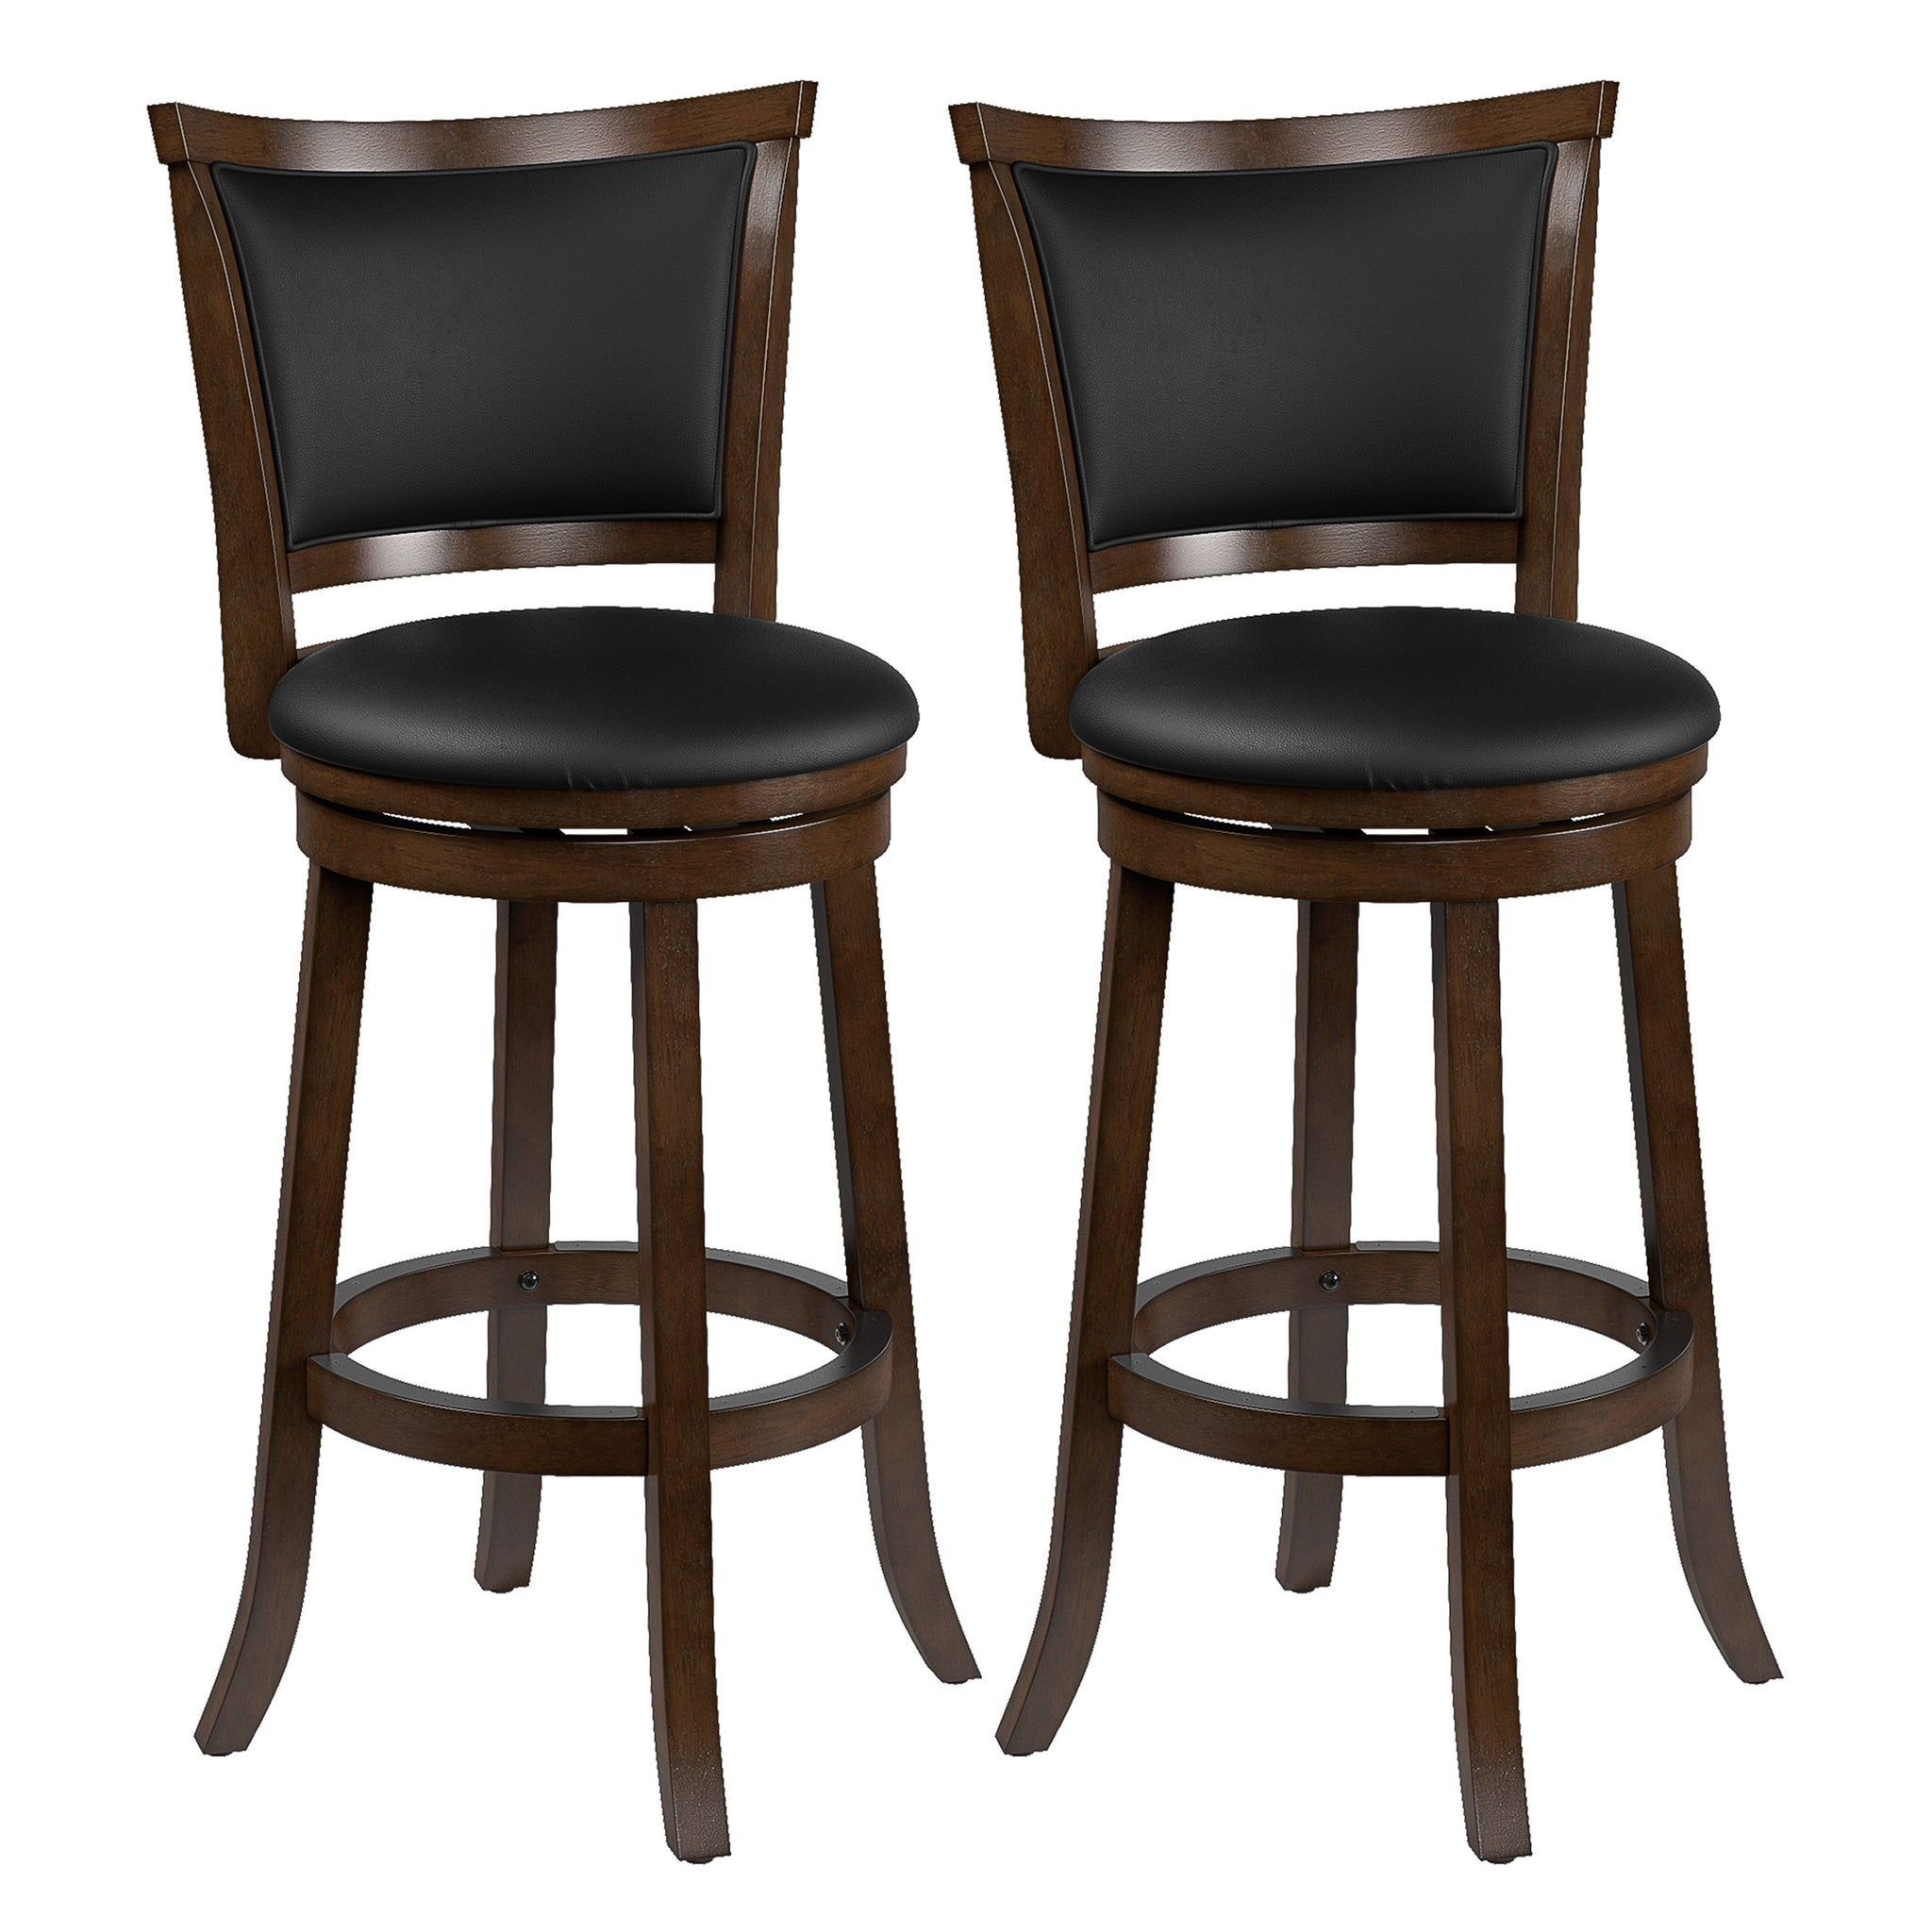 Woodgrove Bar Height Wood Bar Stools with PU Leather Seat and Backrest, set  of 5